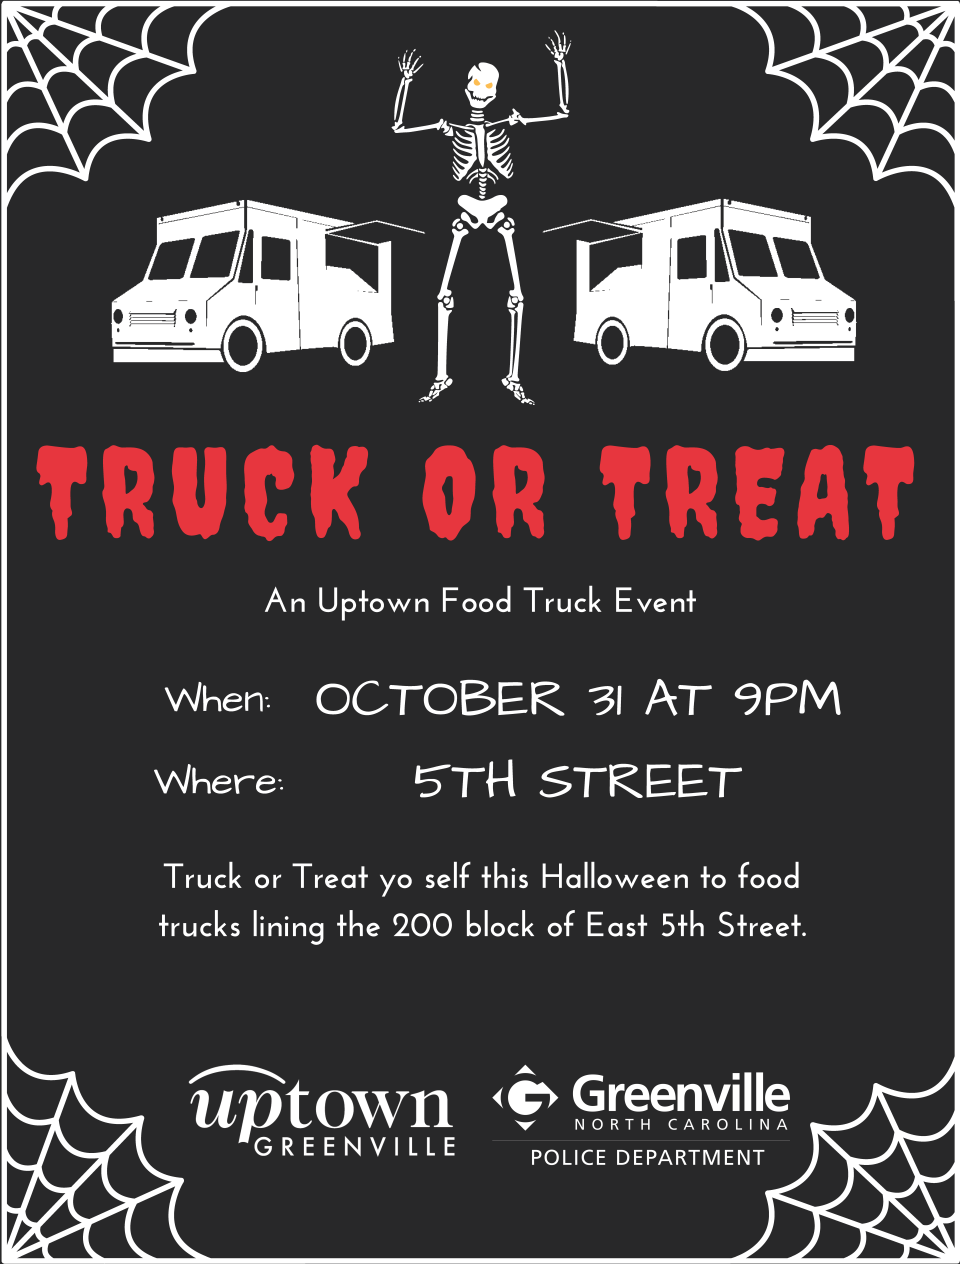 Truck or Treat Flyer 2017